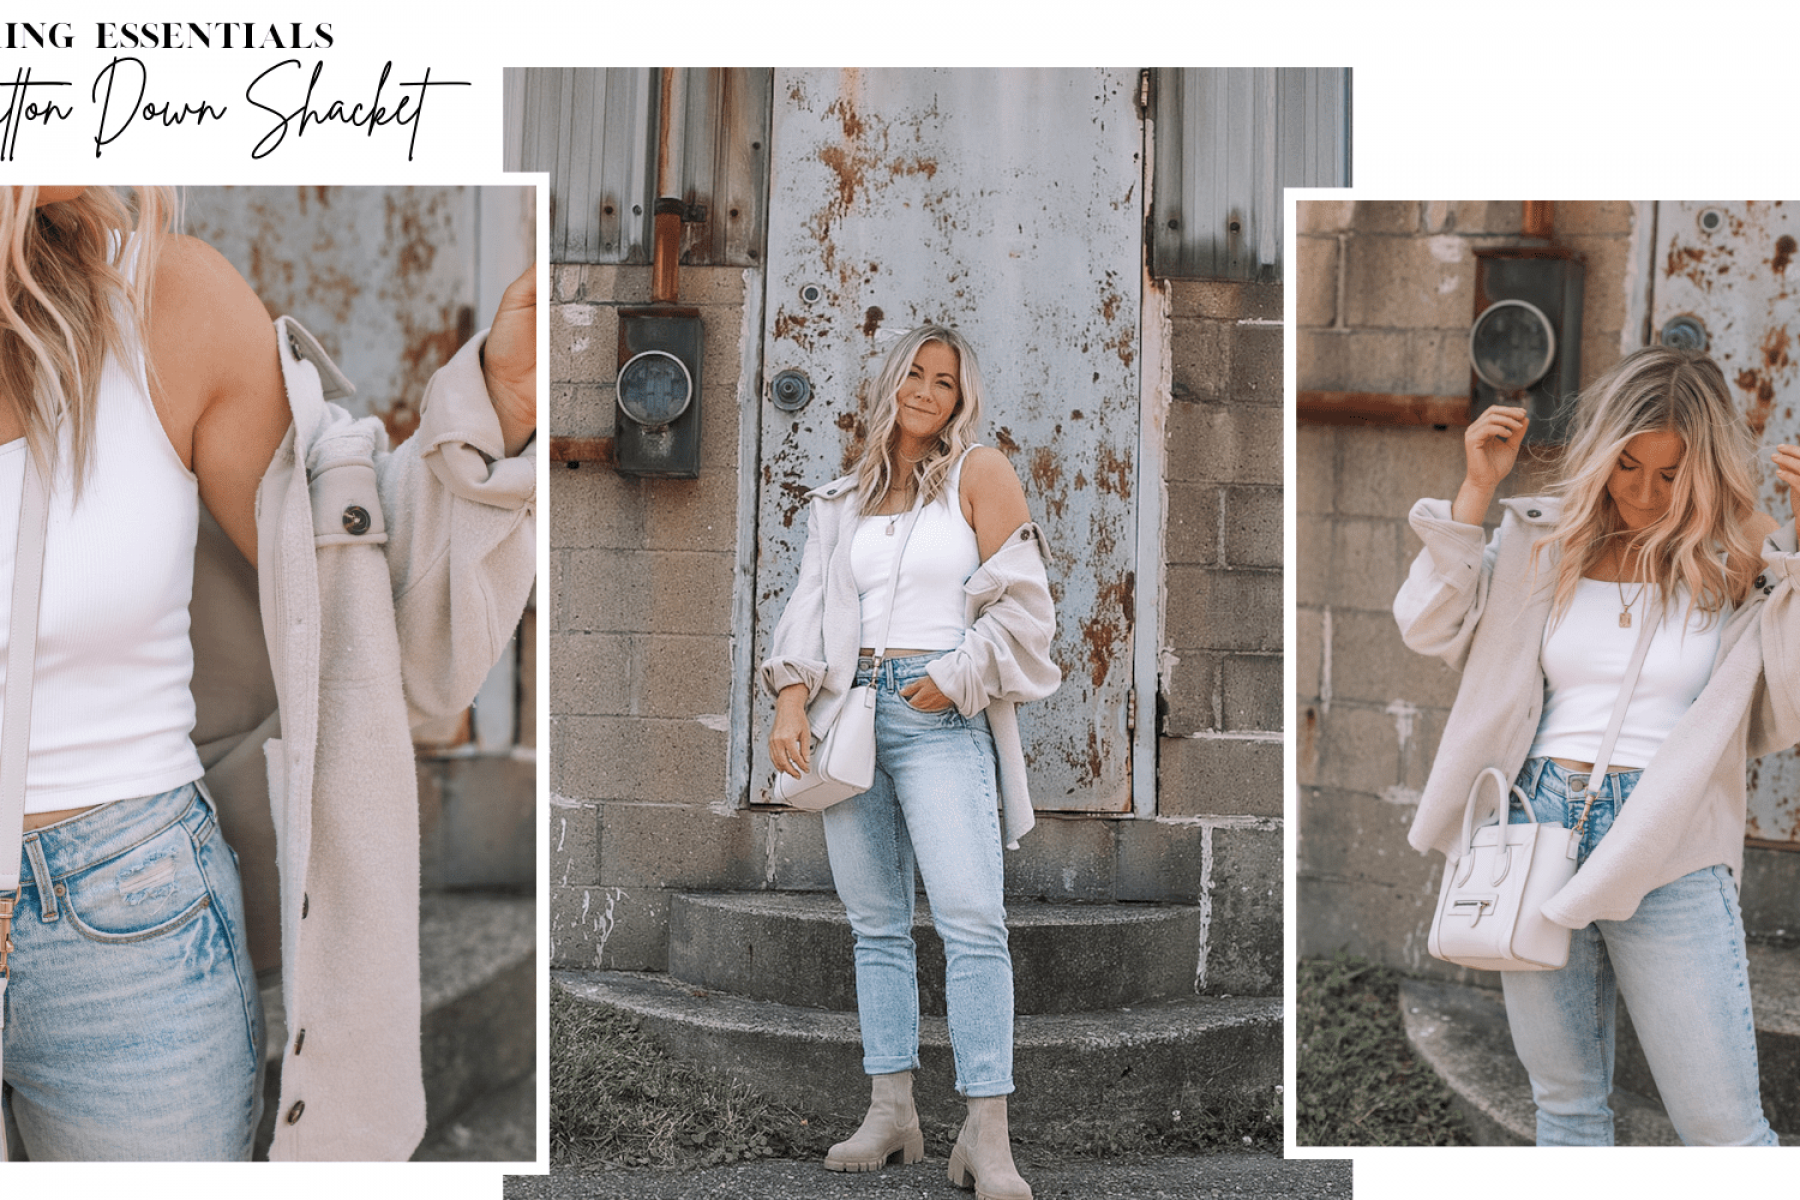 Layering Essentials with this Cozy Button Down Shacket under $50